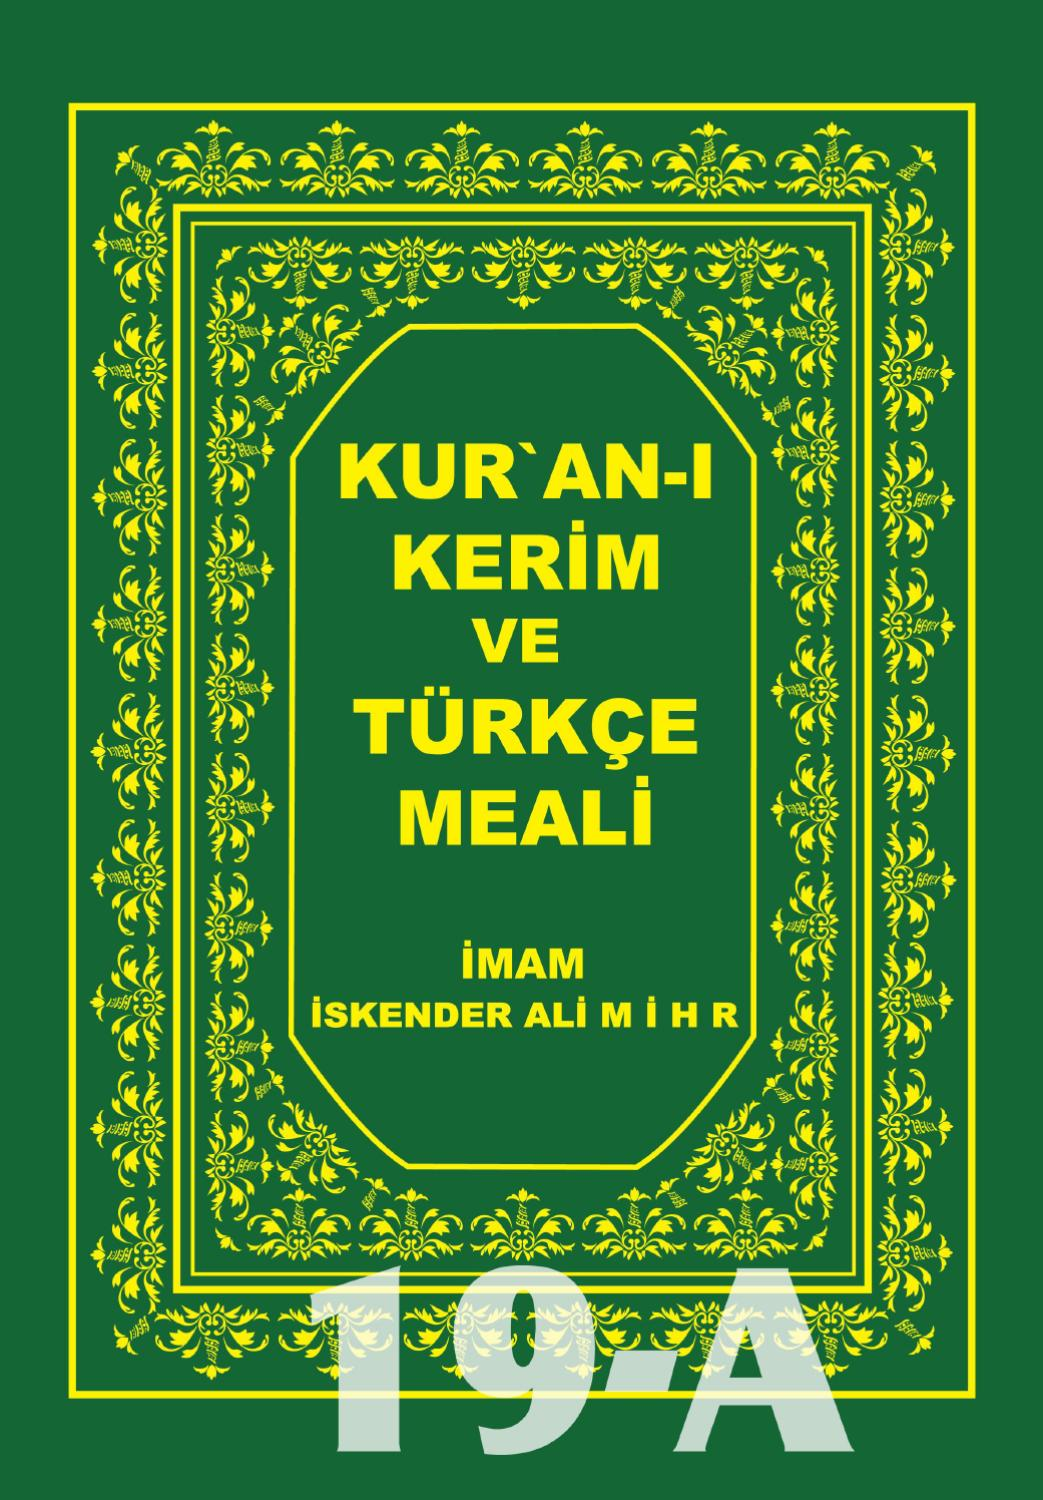 19 Cilt Kuran I Kerim By Mihr Publication Issuu